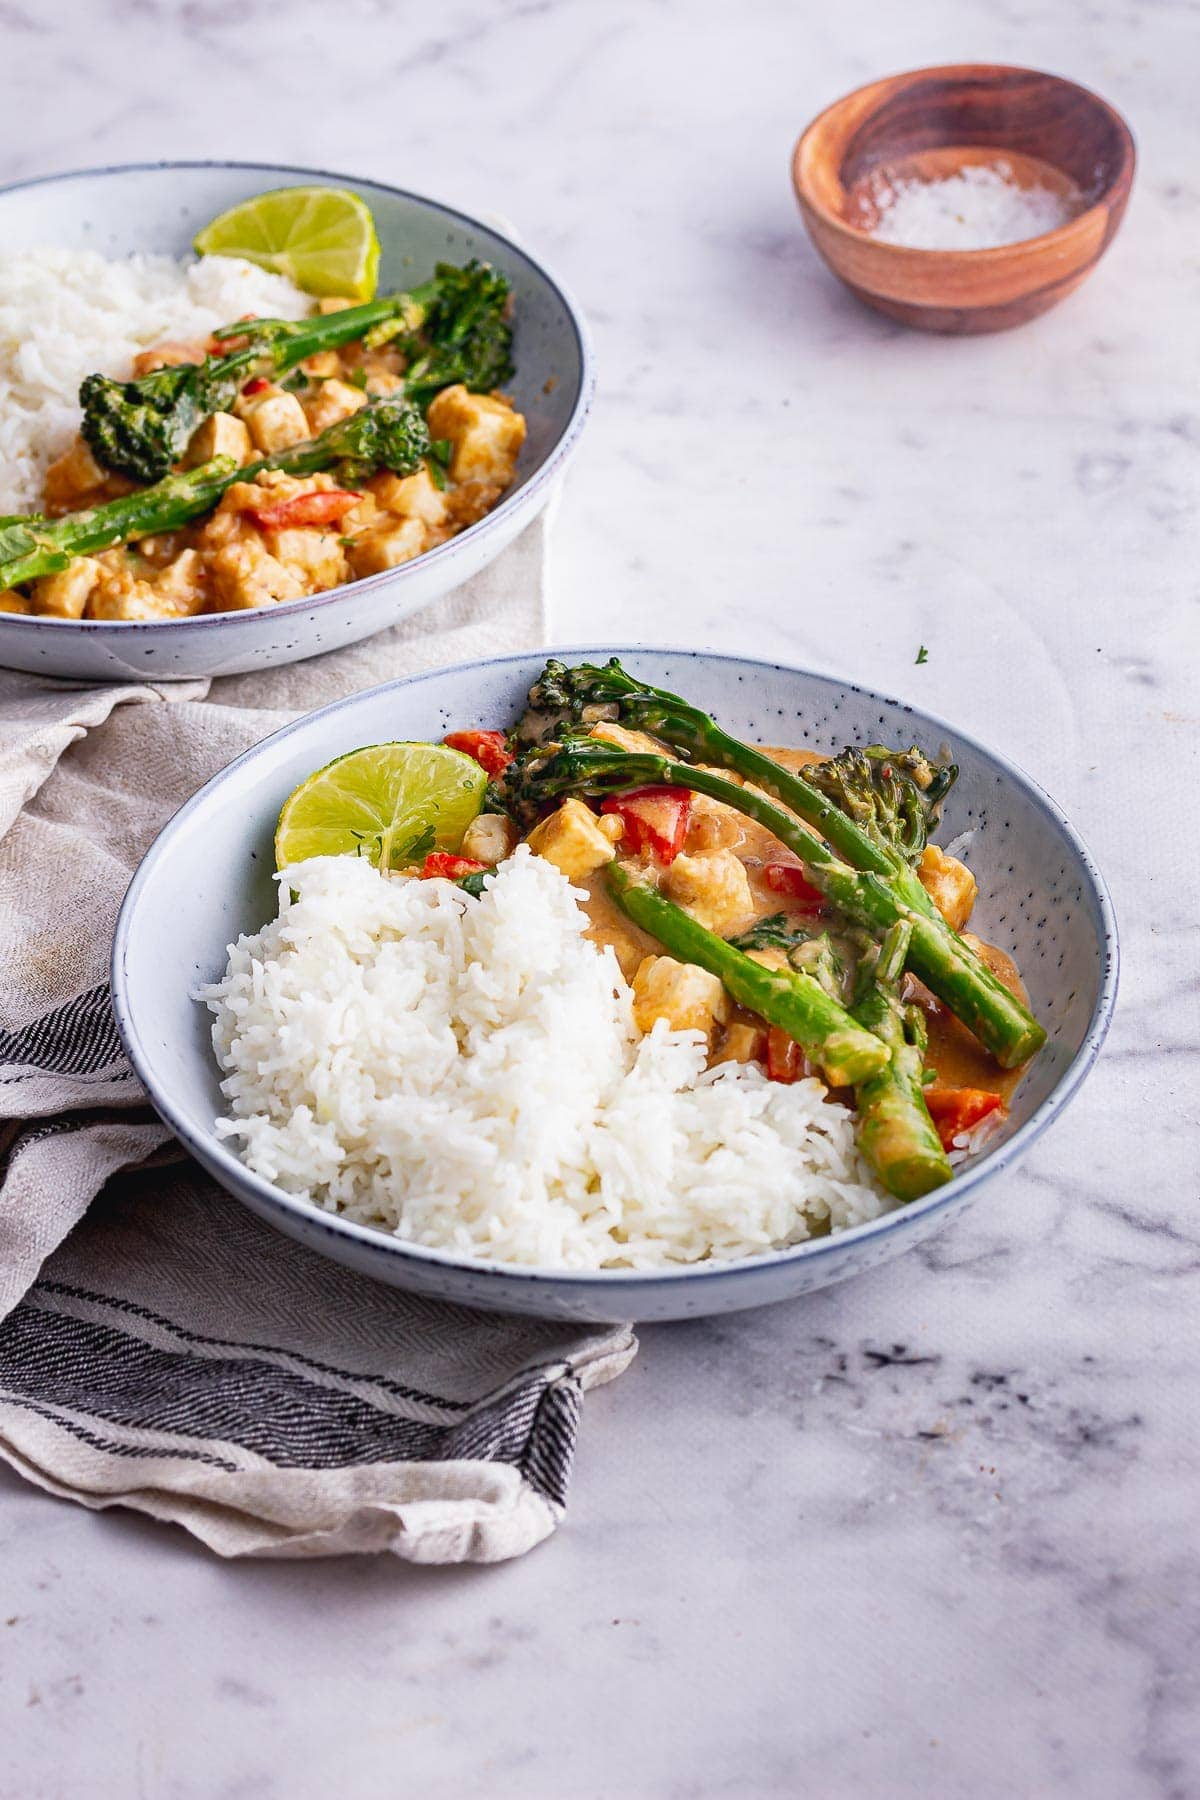 Blue bowls of peanut tofu curry with broccoli on a marble surface